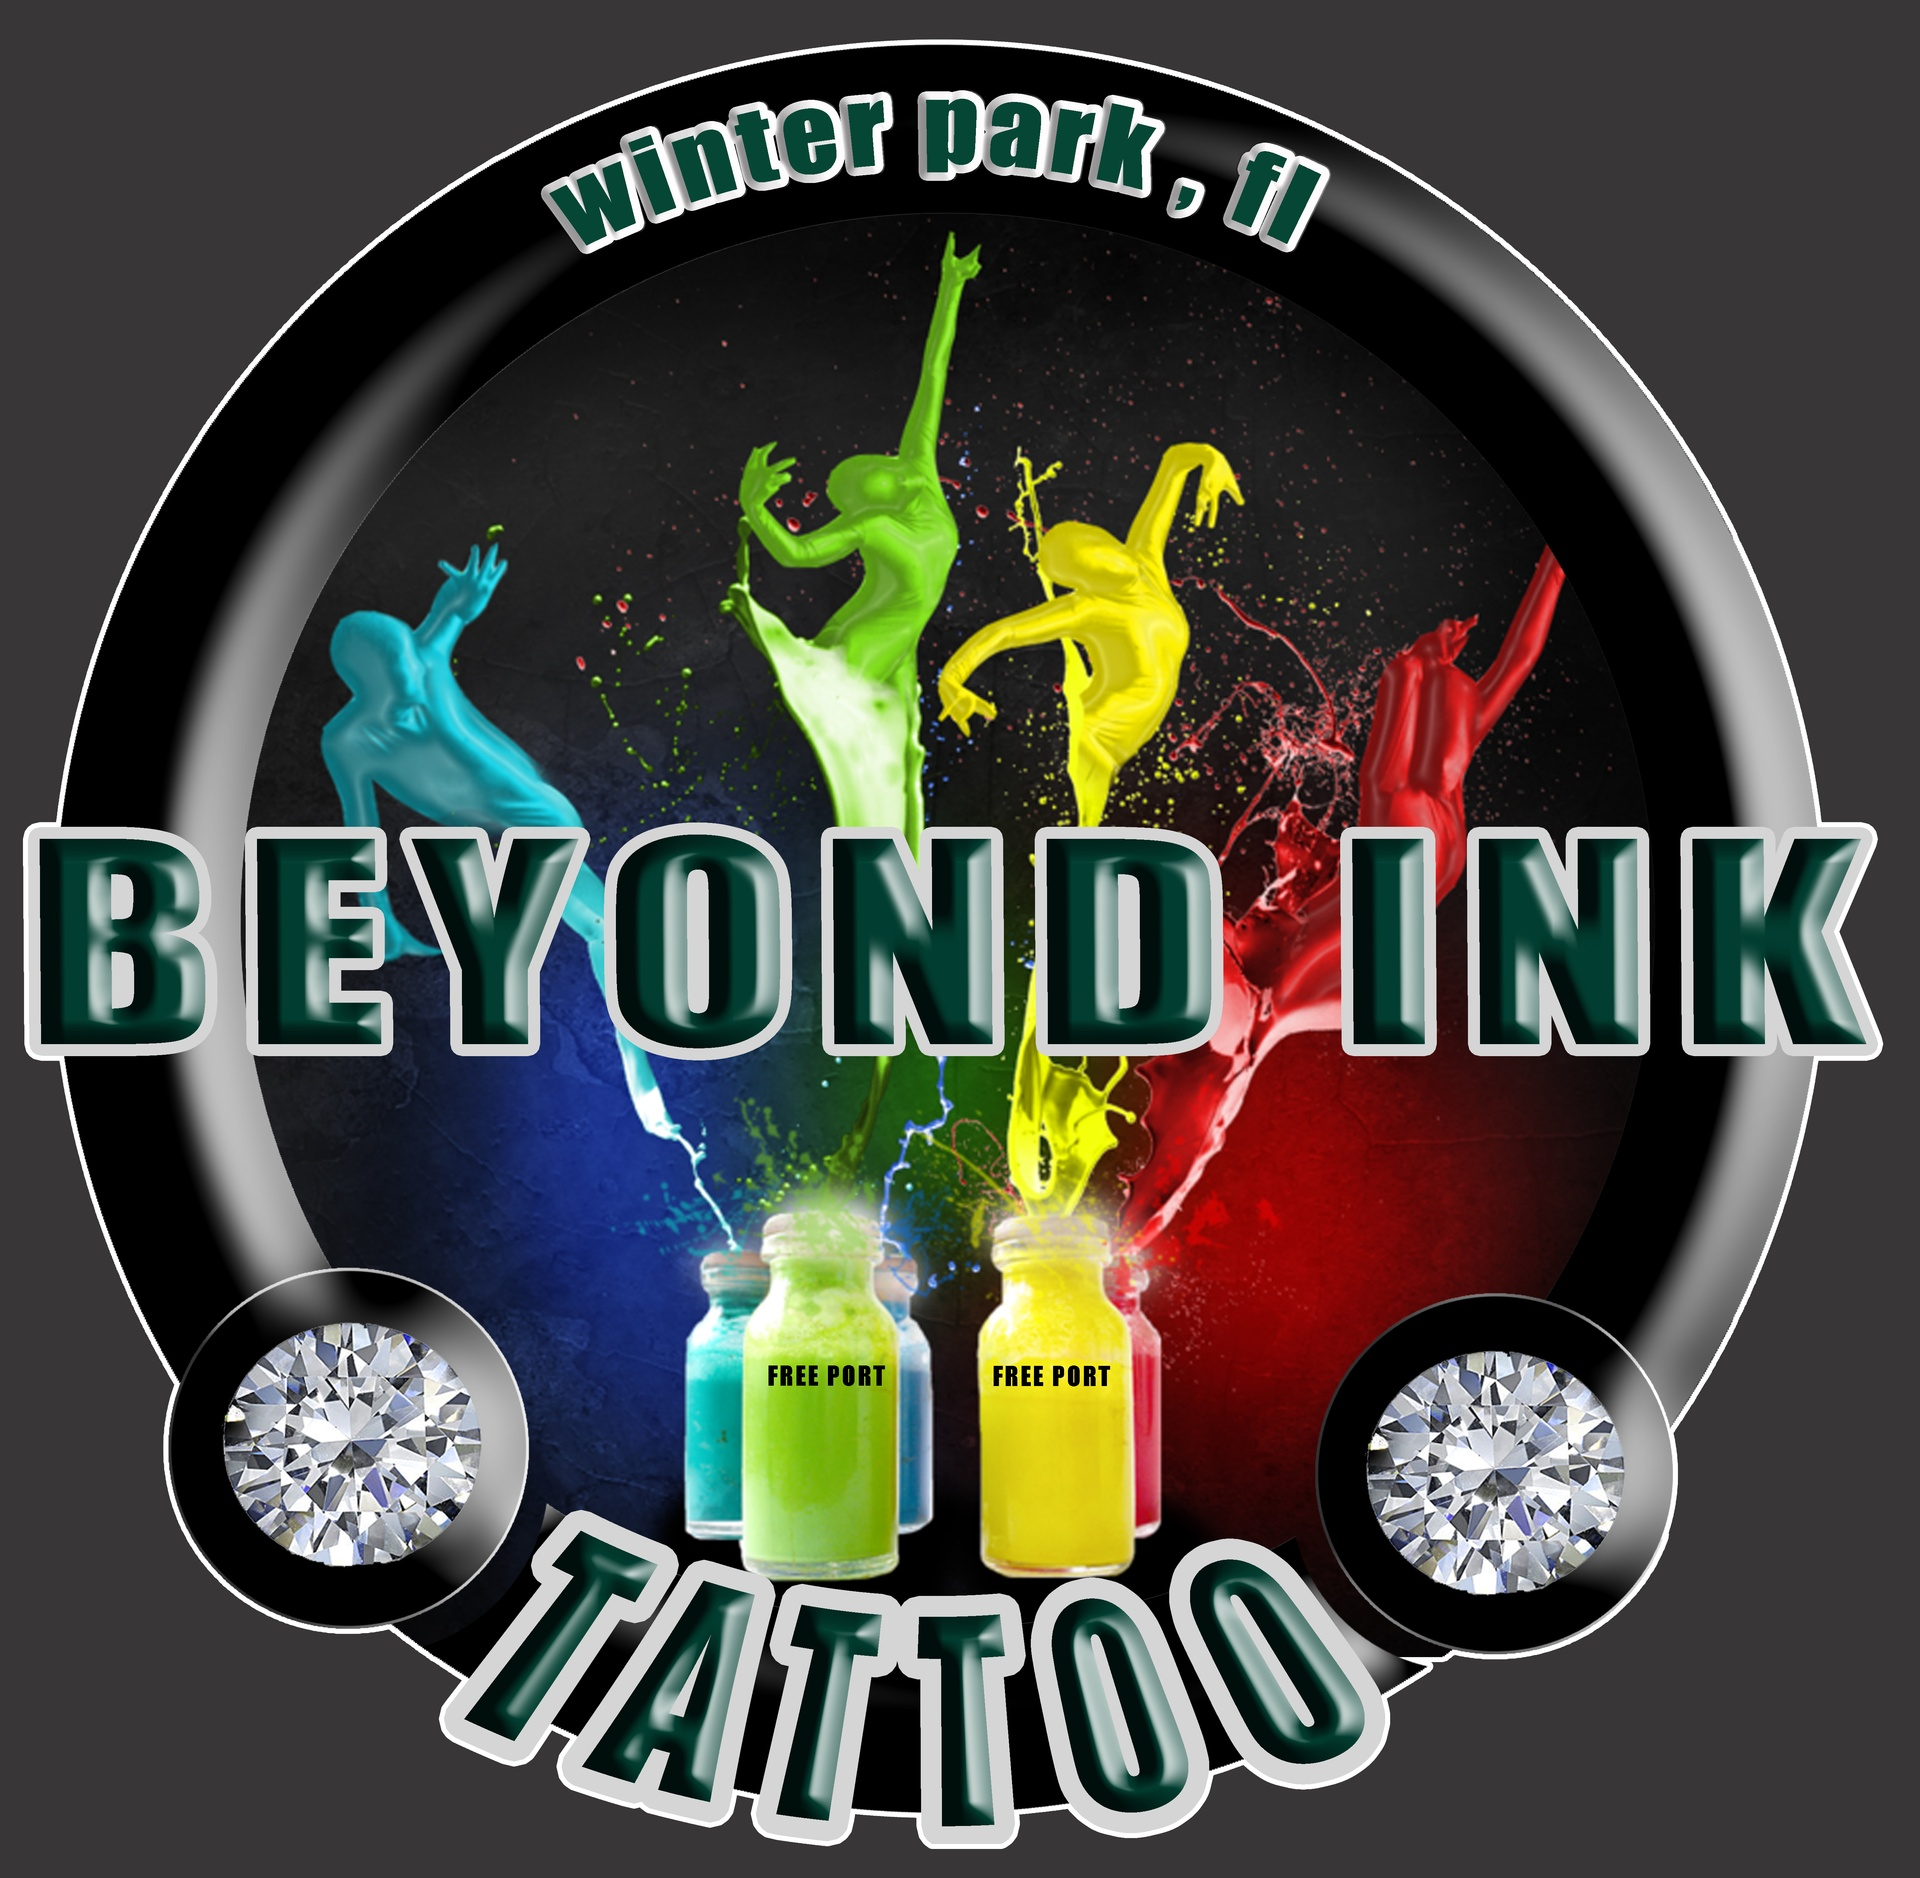 beyond ink tattoos and body piercing